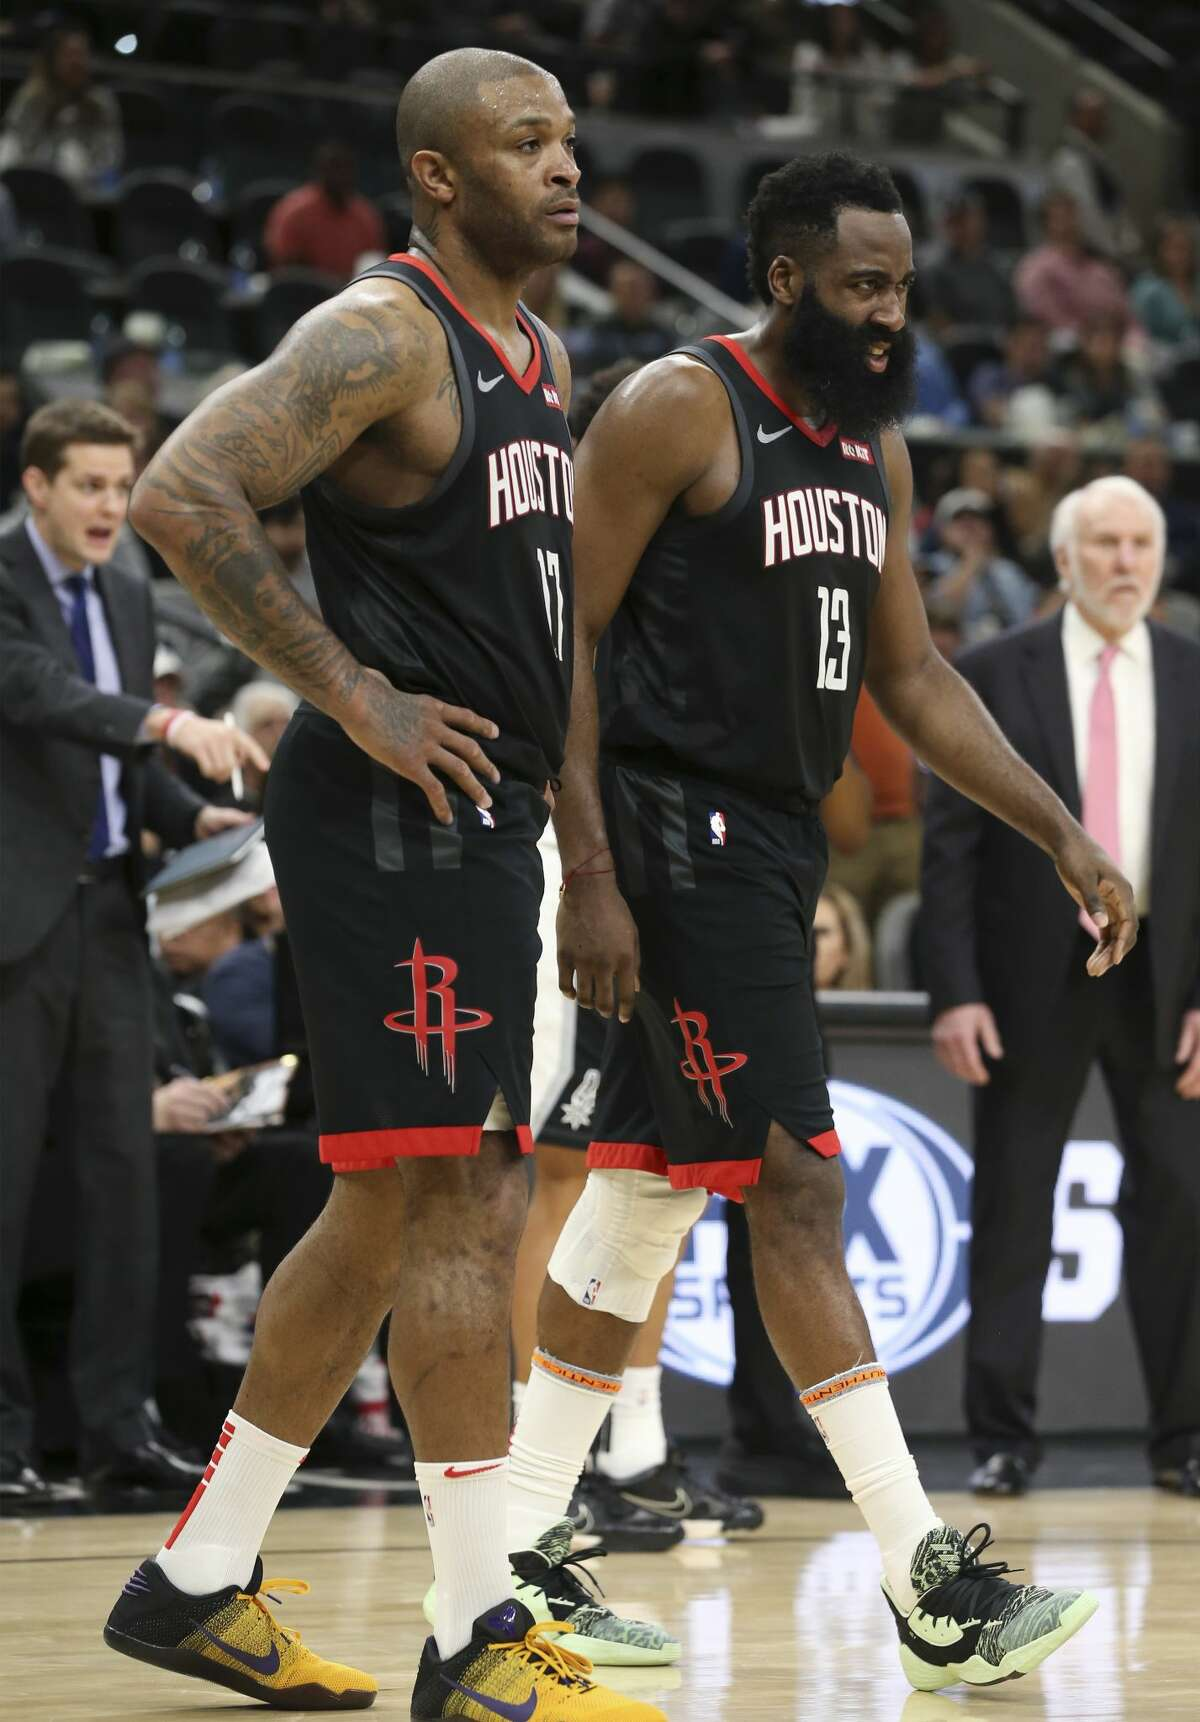 Houston Rockets' James Harden (13) reacts after a play against the Spurs during their game at the AT&T Center on Tuesday, Dec. 3, 2019. Spurs rally from 22 points to defeat the Rockets, 135-133, in double overtime.